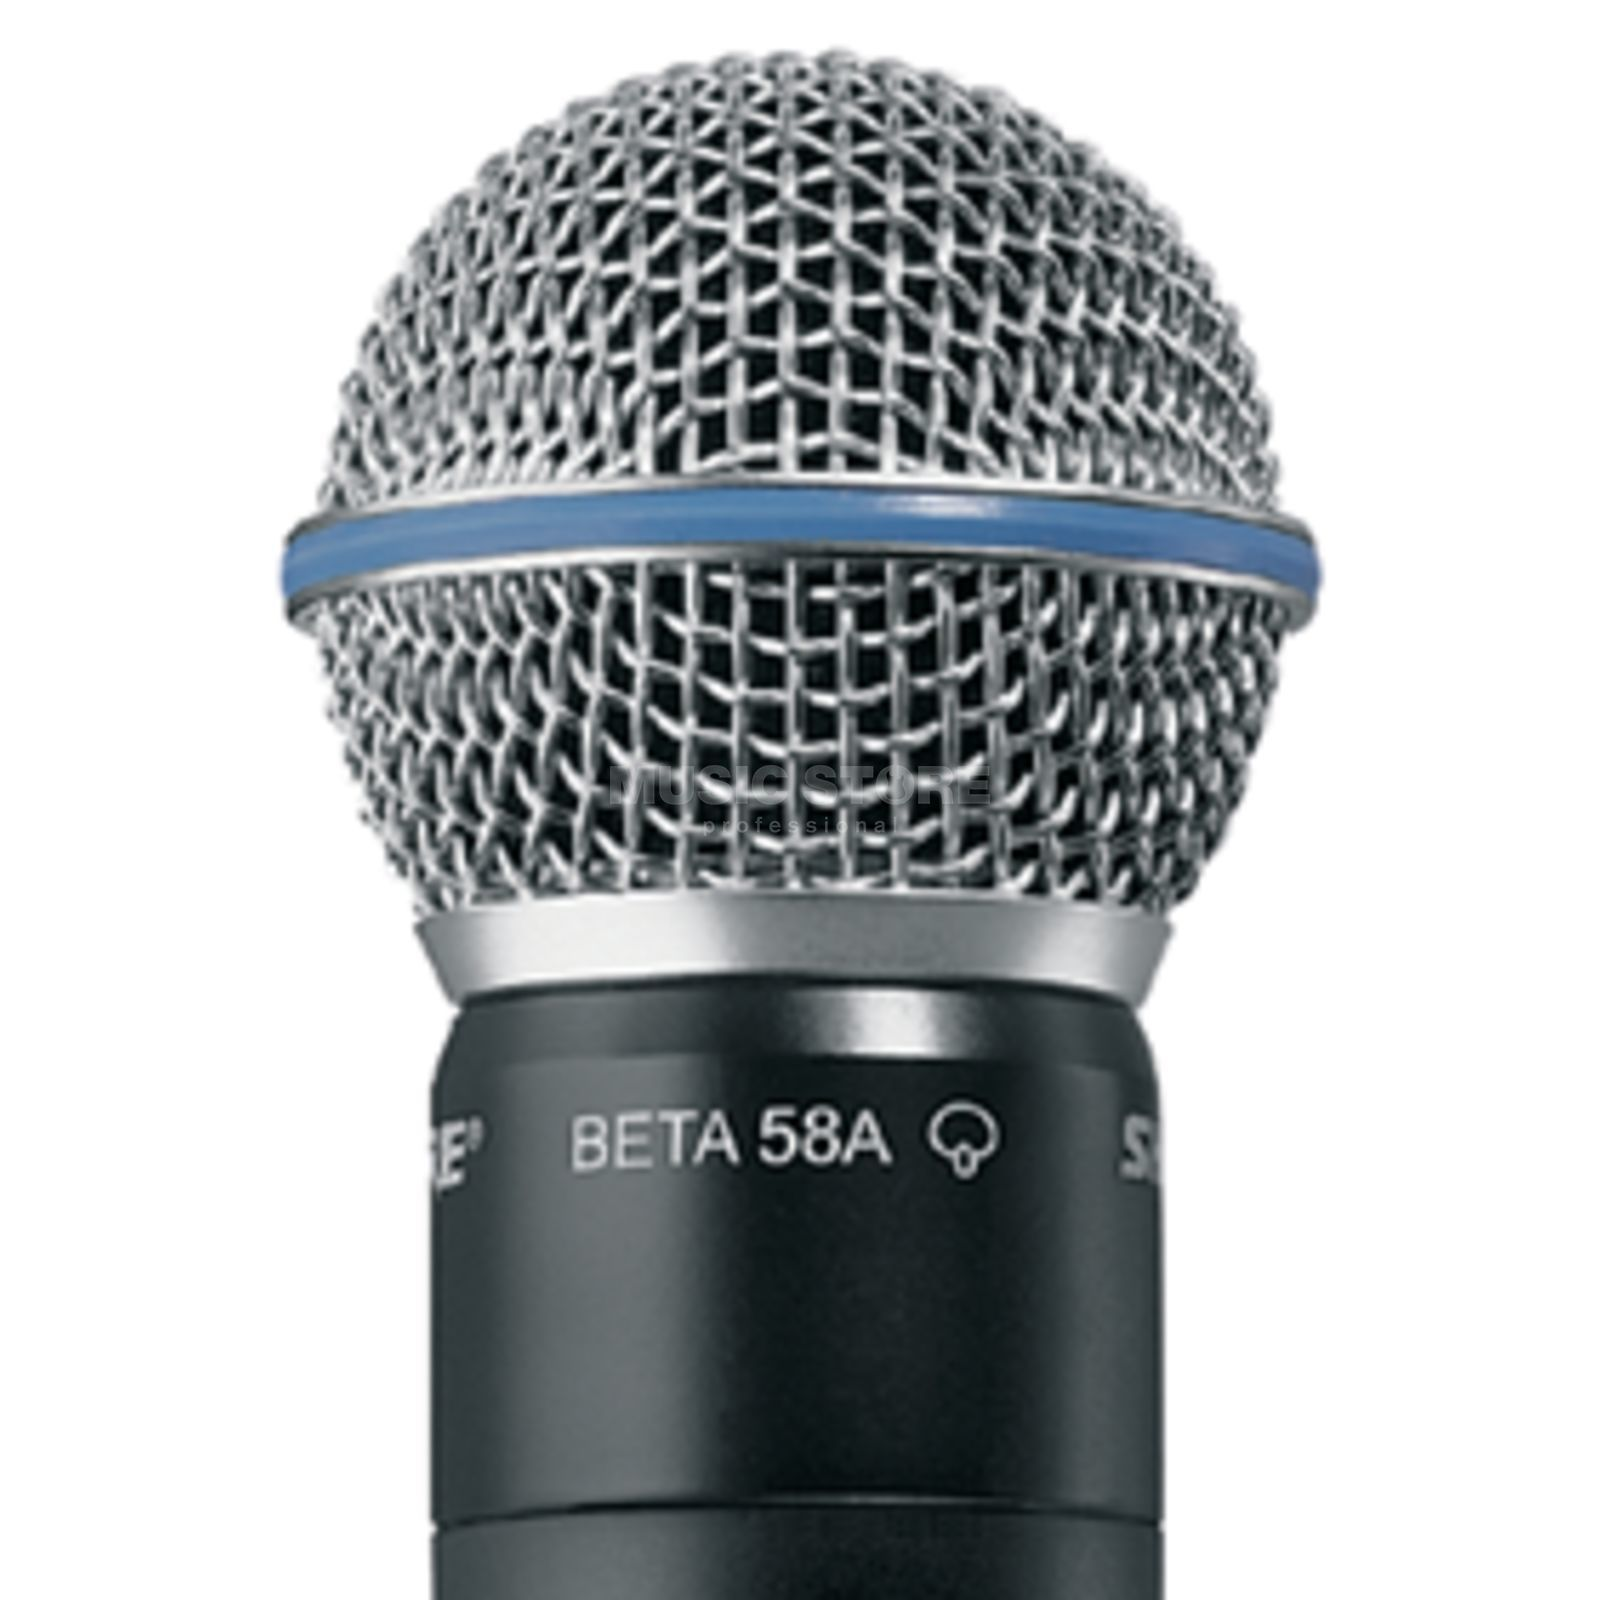 Shure RPW 118, Beta 58A Cartridge, Super cardioid Produktbillede